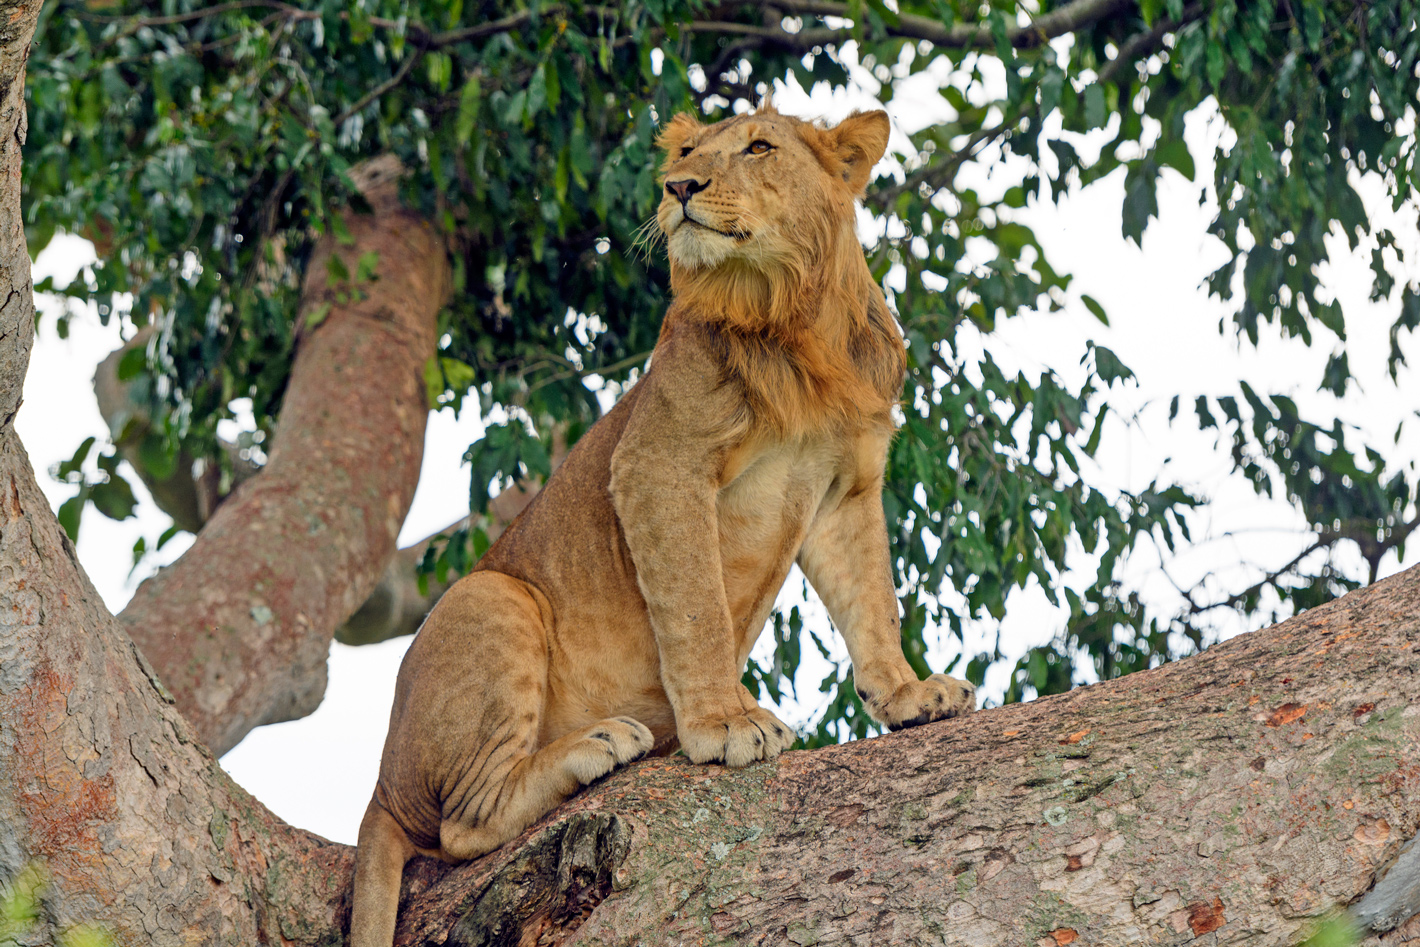 Adolescent male lion in a tree